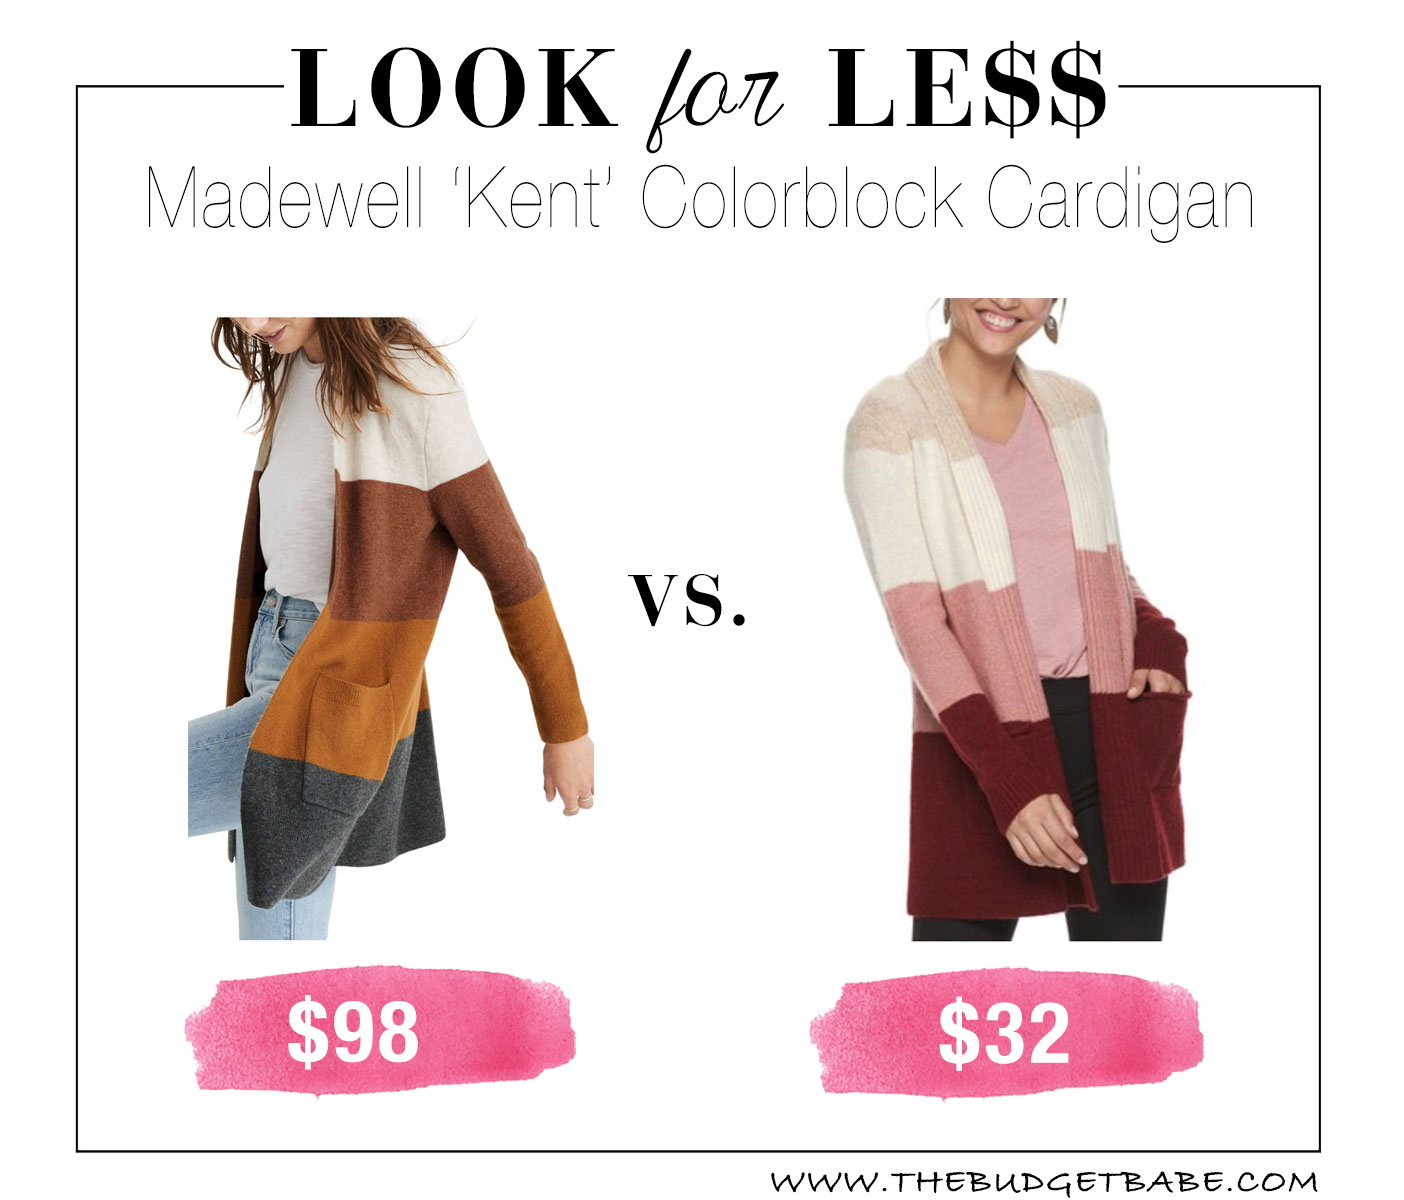 Looks like Madewell for less